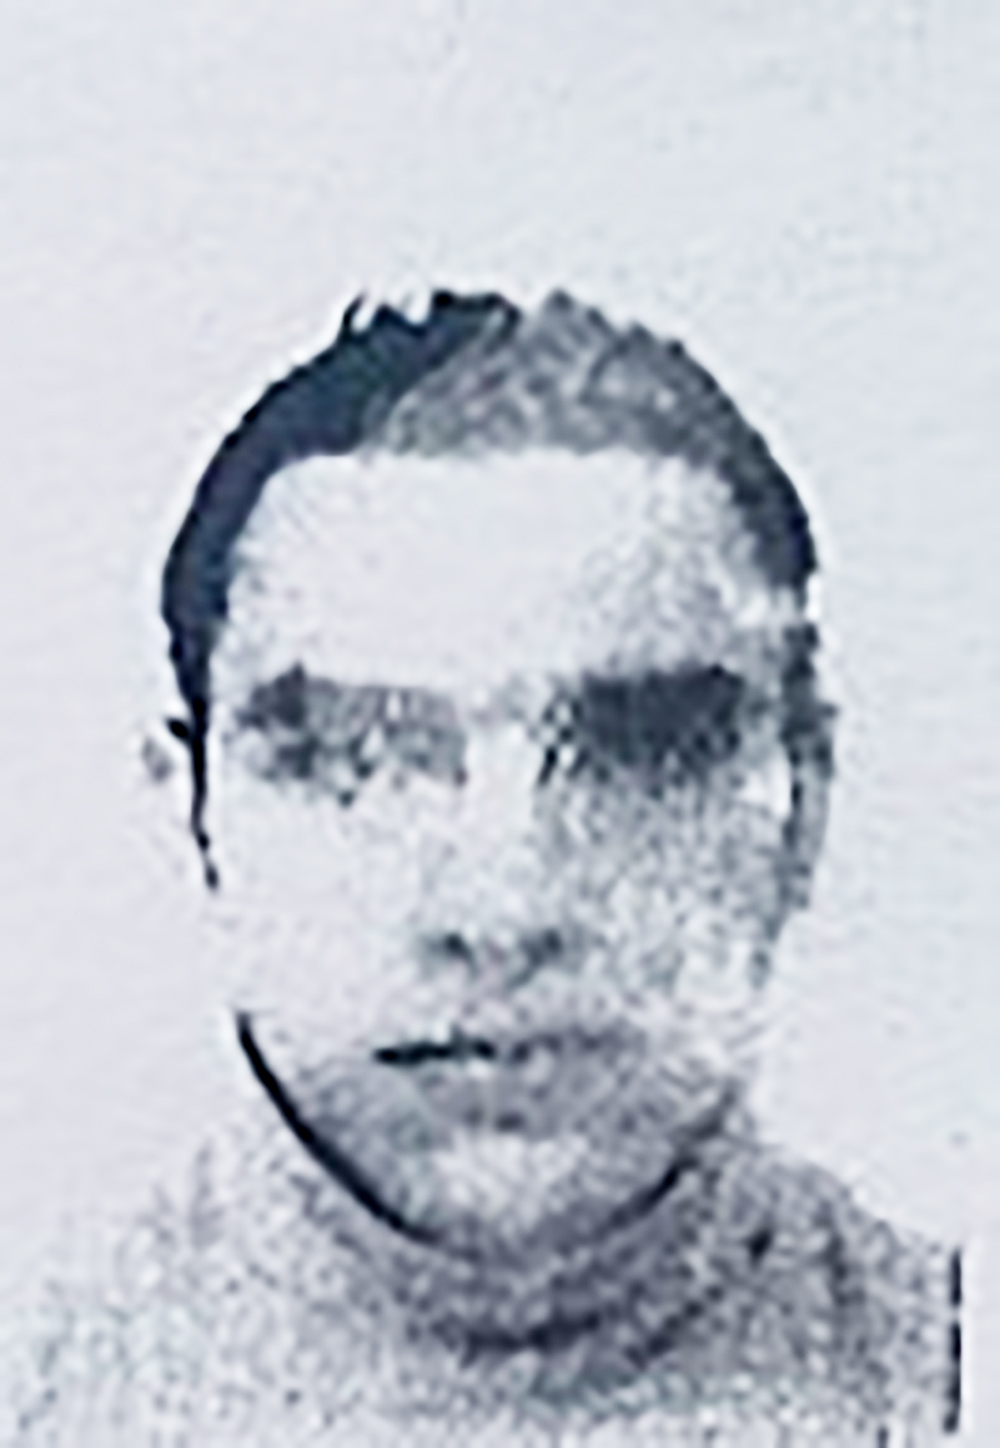 This image obtained from a French police source on July 15, 2016, shows a reproduction of the picture on the residence permit of Mohamed Lahouaiej-Bouhlel.